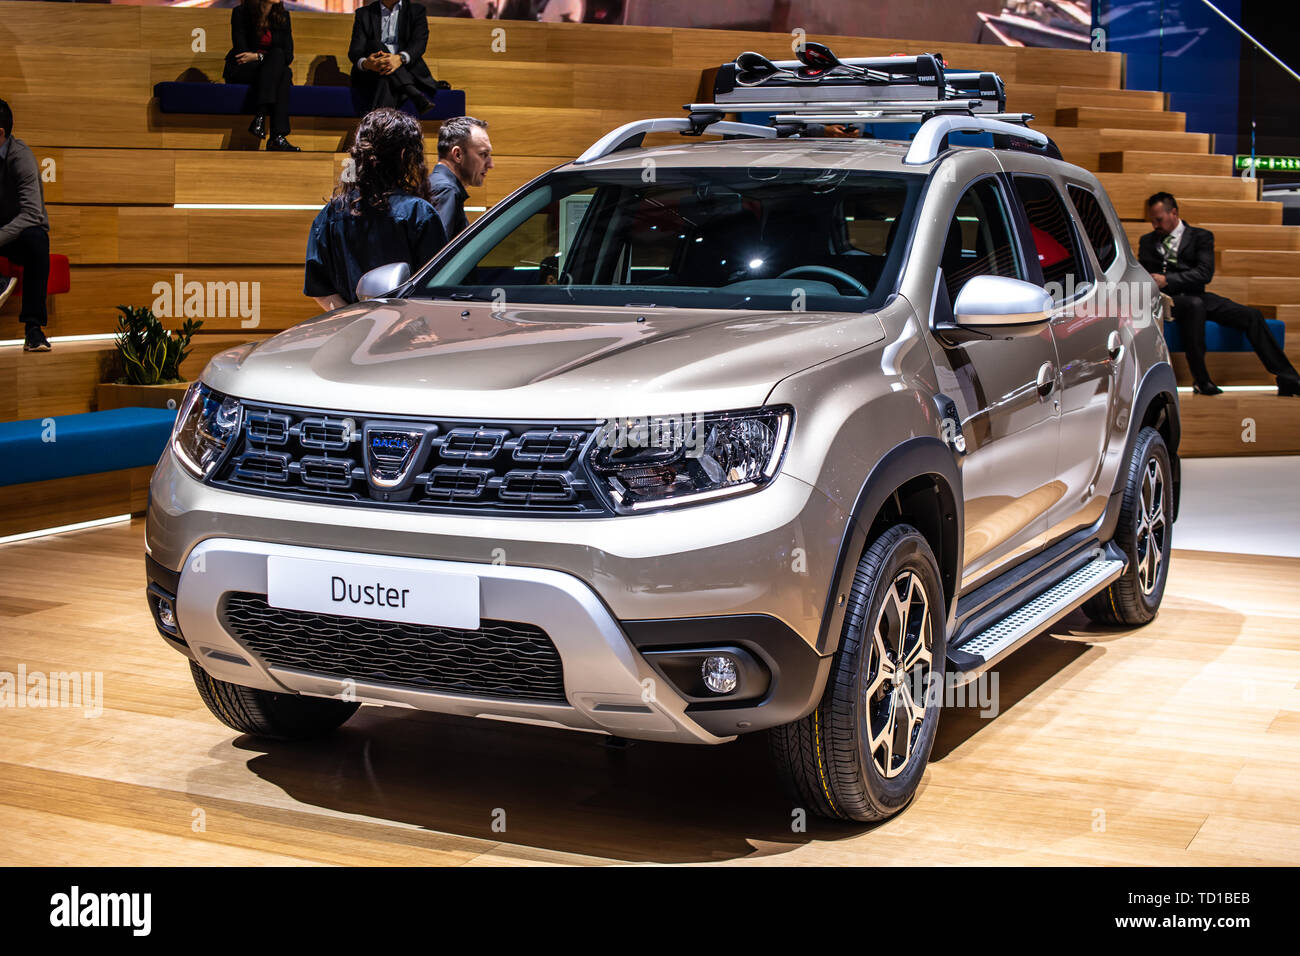 Page 2 Dacia Duster High Resolution Stock Photography And Images Alamy